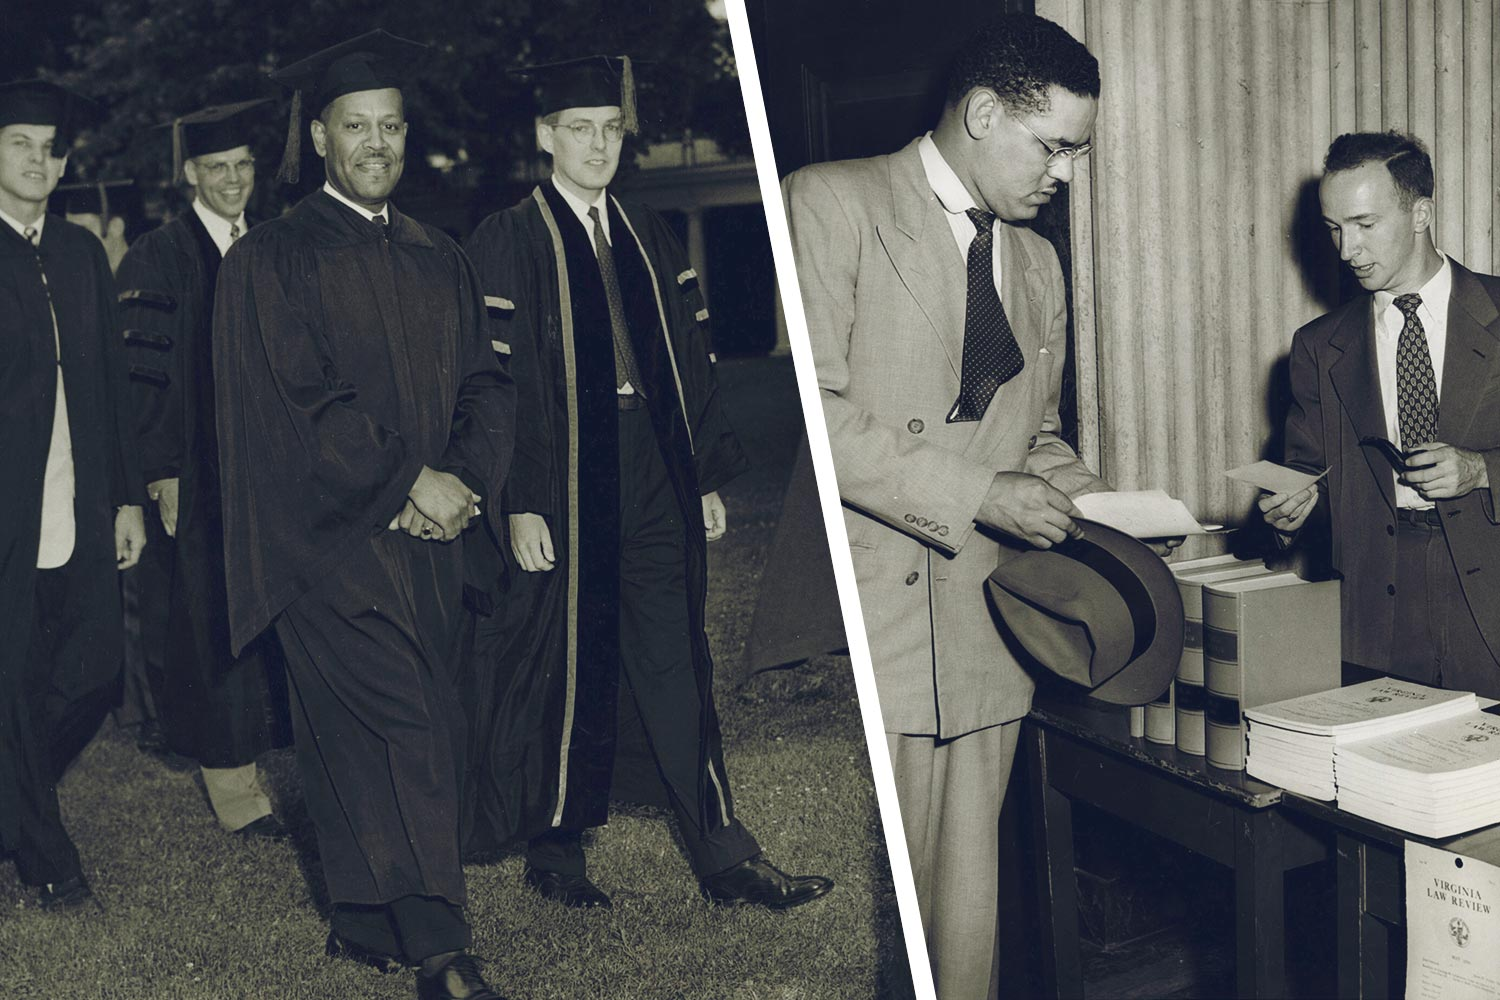 Walter Ridley, left, was UVA's first African-American graduate, earning a doctorate of education in 1953. Gregory Swanson sued to become UVA's first African-American law student.